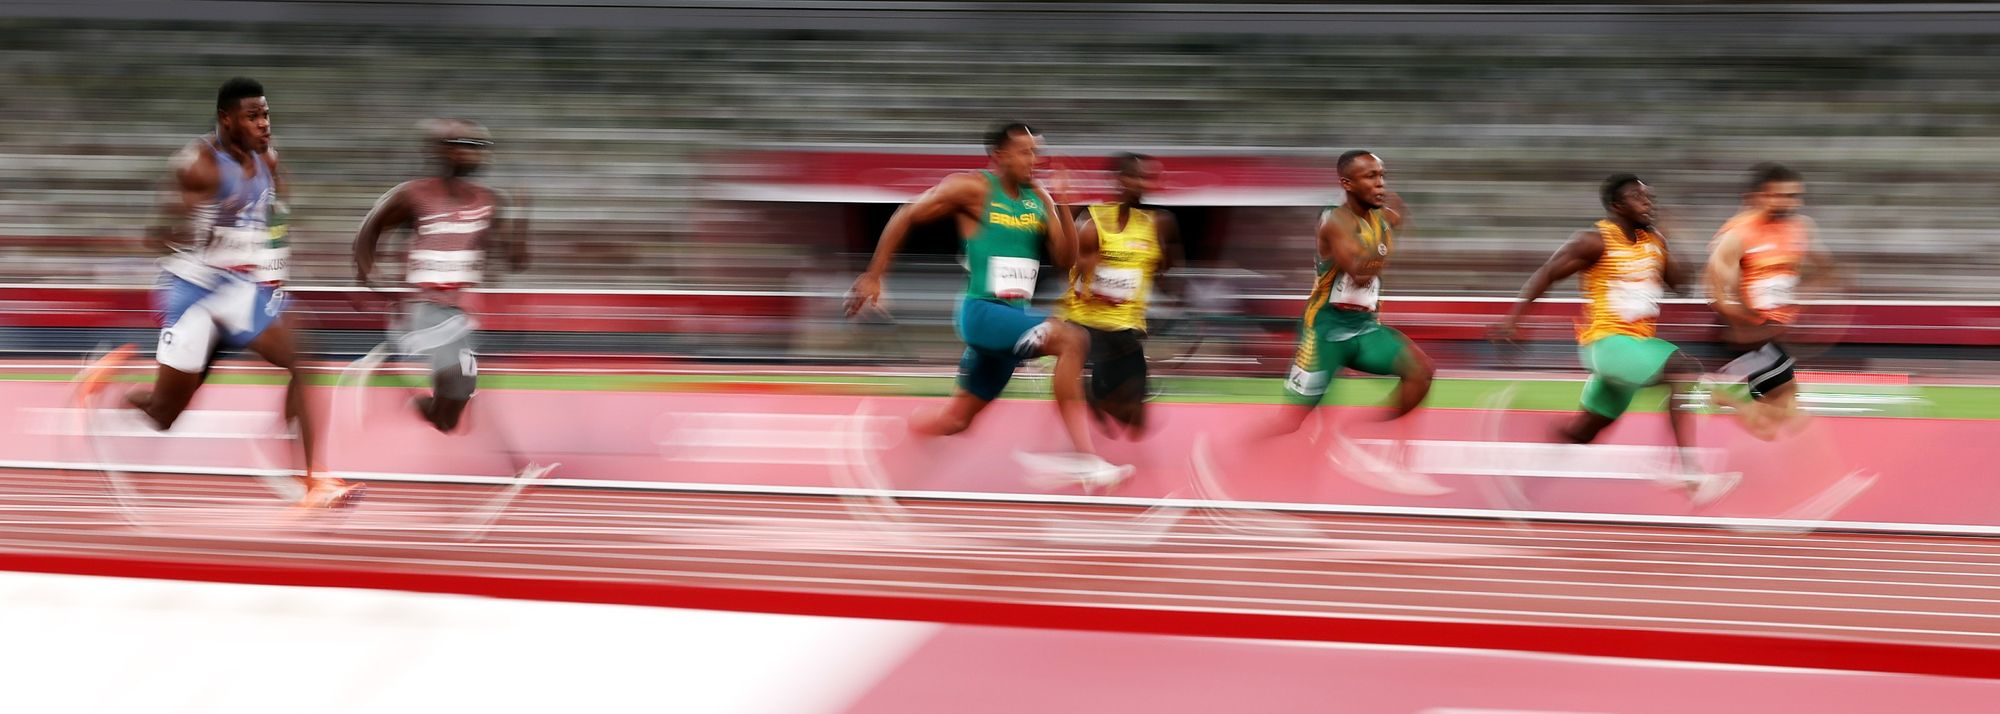 The action is hotting up in Tokyo and another four gold medals will be claimed on day three of athletics at the Olympic Games on Sunday (1).